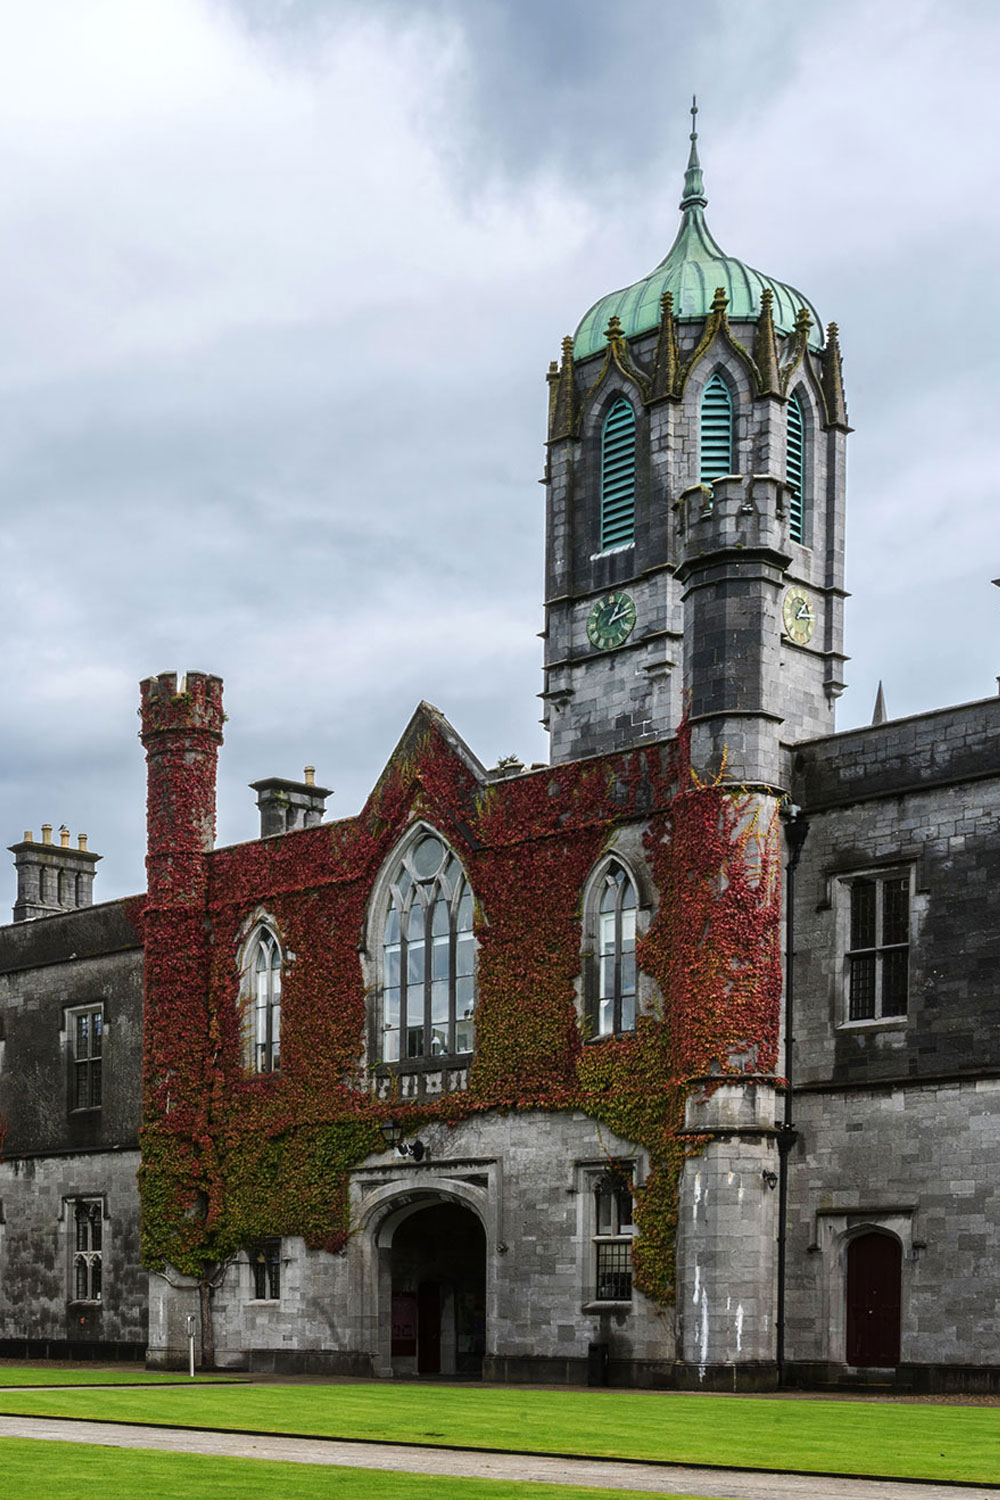 Ivy covered clock tower in the historic Quadrangle on National University of Ireland Campus under cloudy sky.